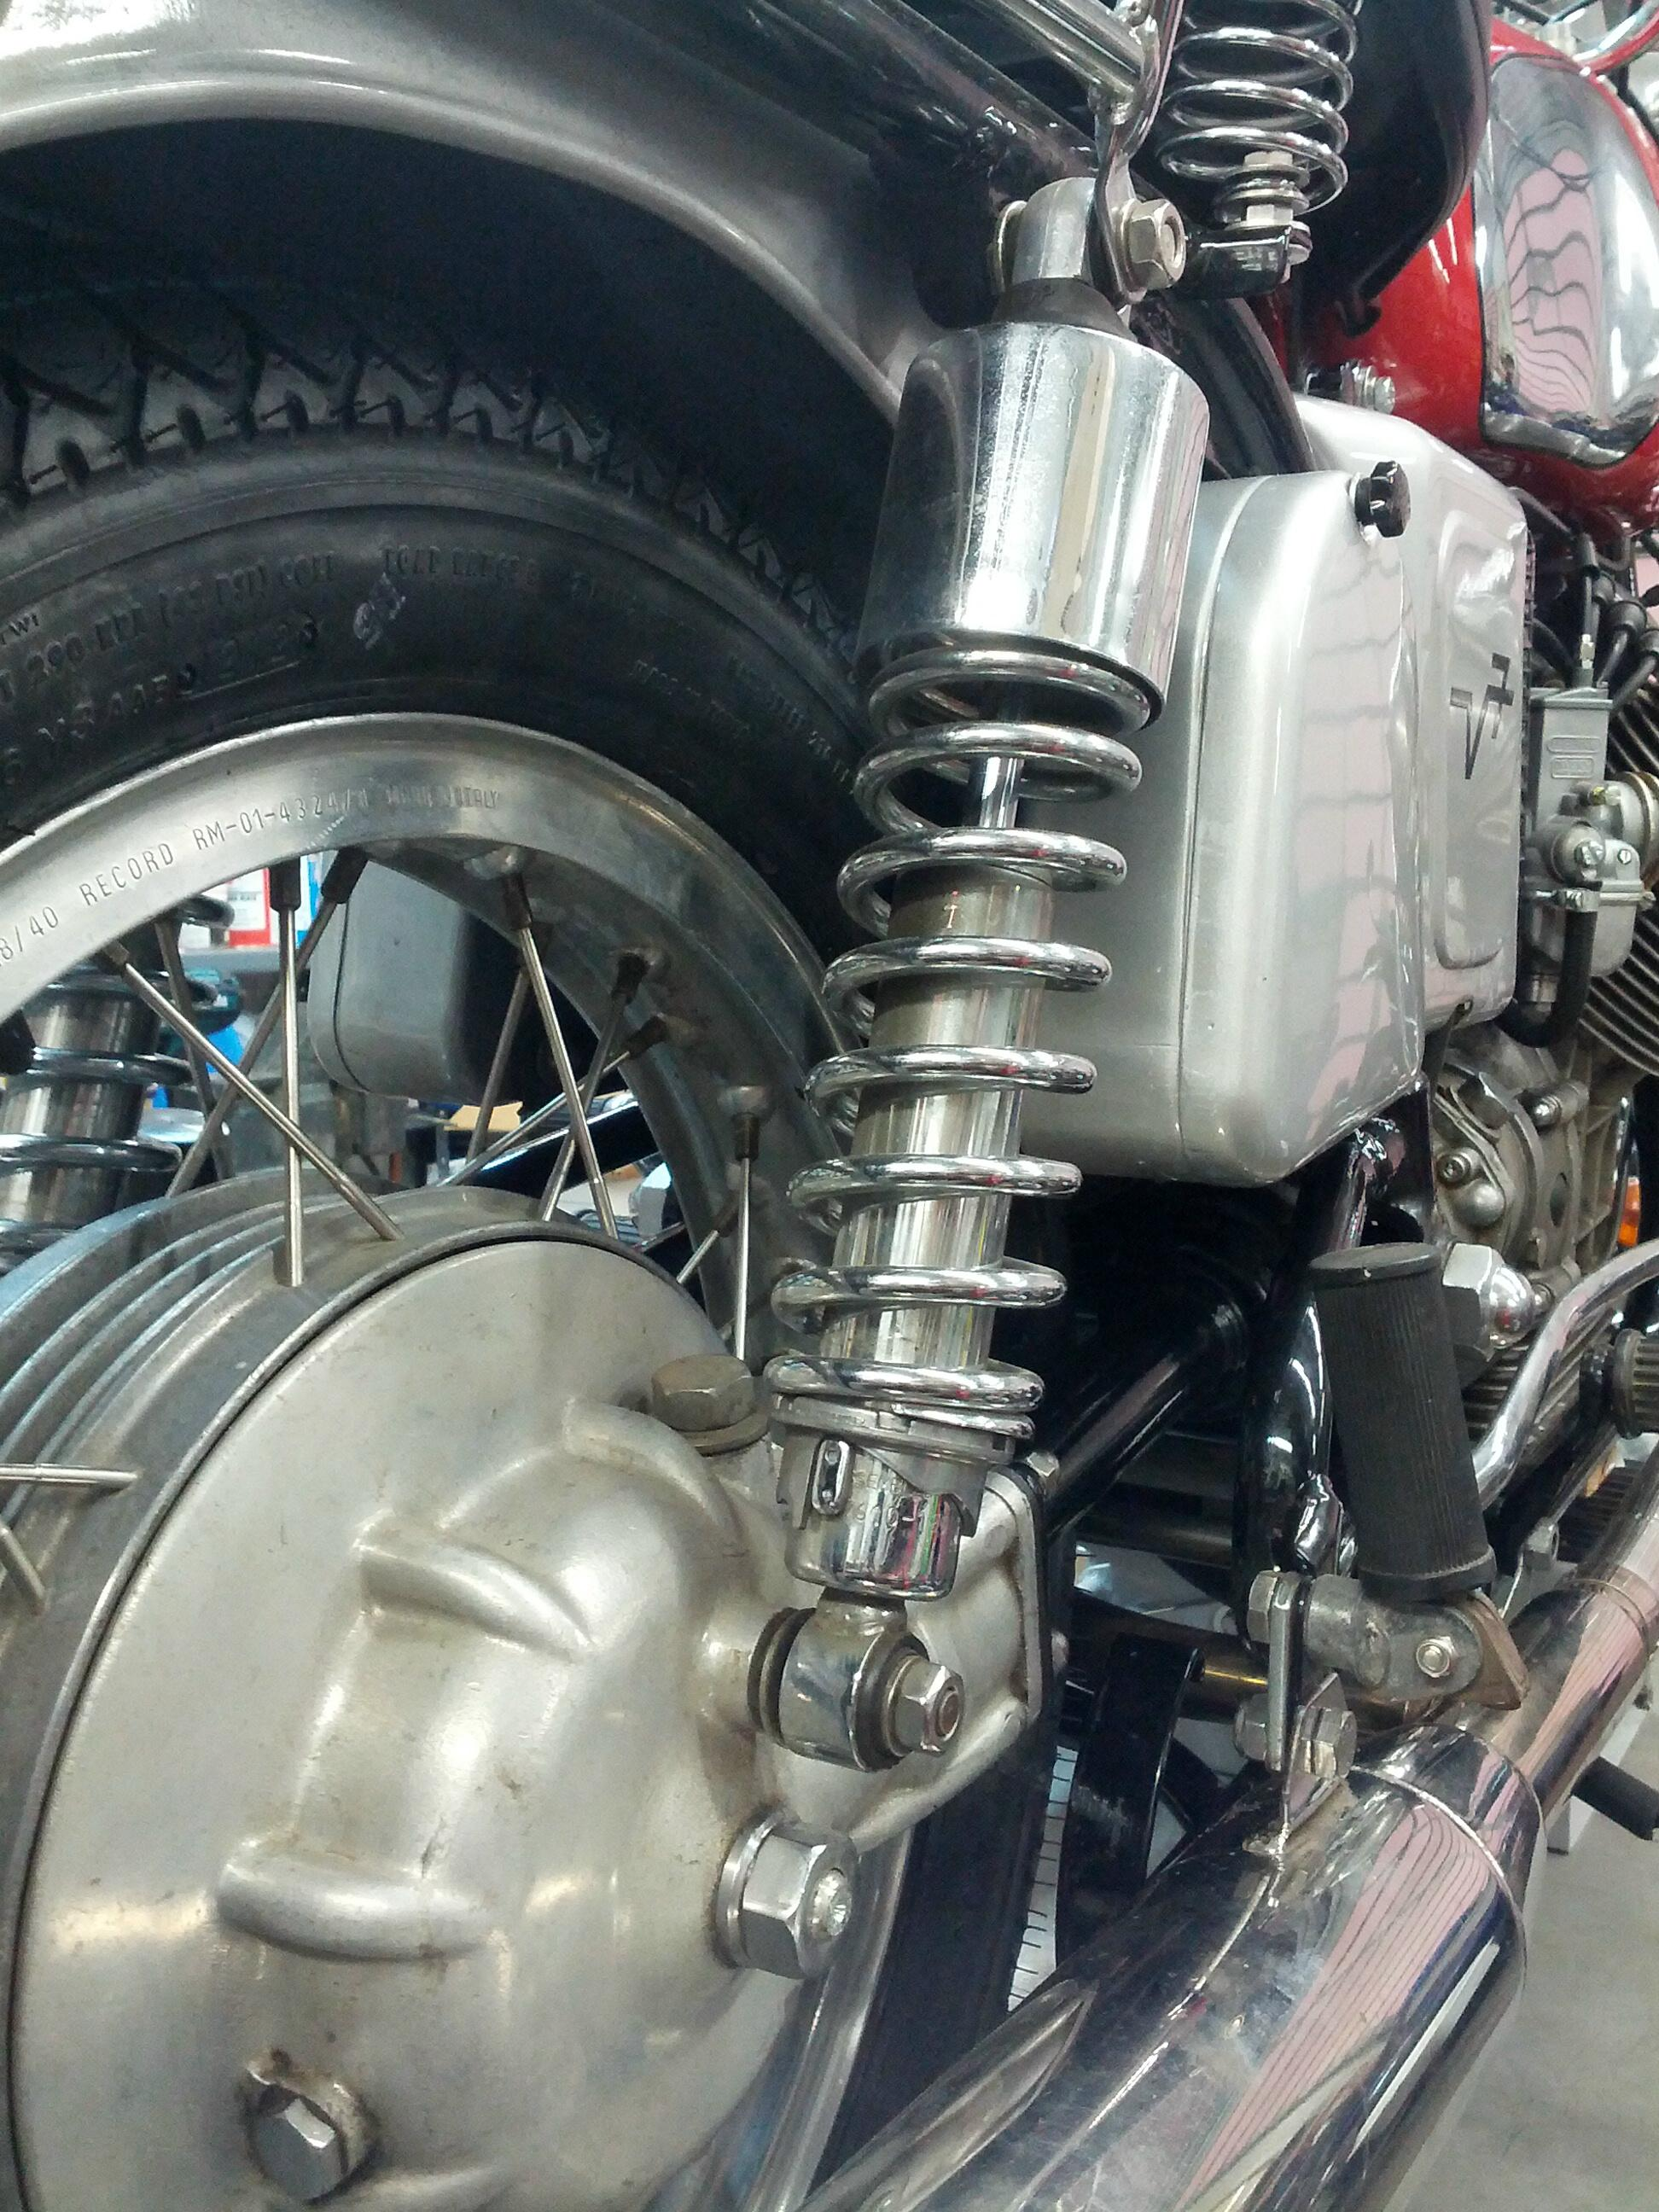 IKON shock aborber set for short swingarm models, all chrome